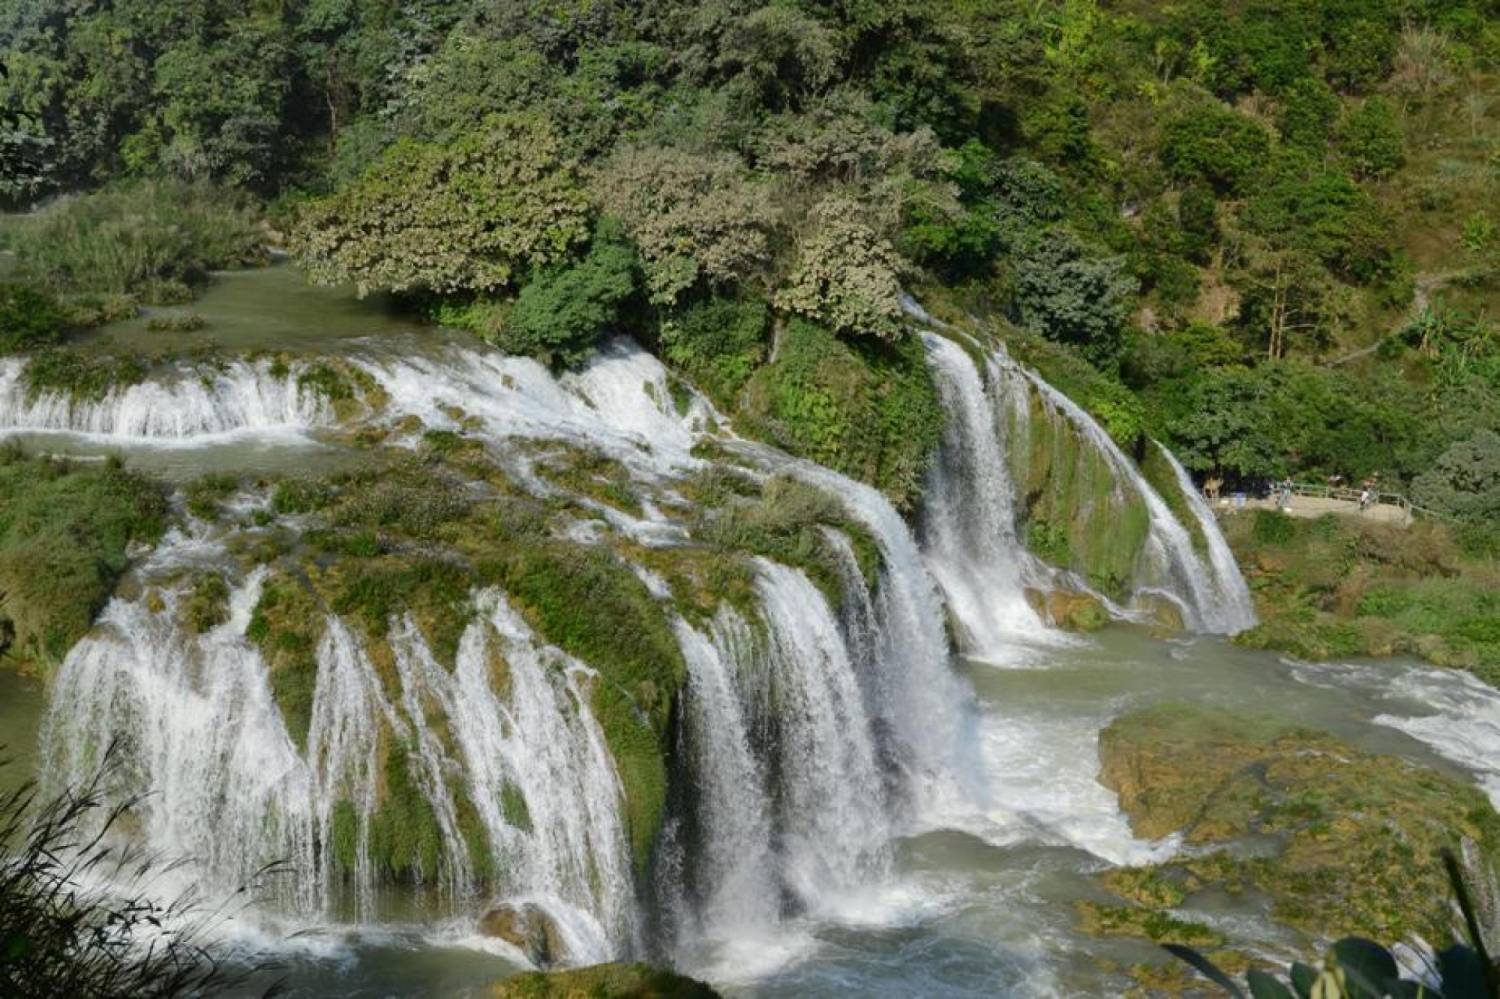 Thai Giang Pho Waterfall The Northwest, The Adventurous Ba Be - Ban Gioc - Ha Giang Tour 5D4N (Private ...